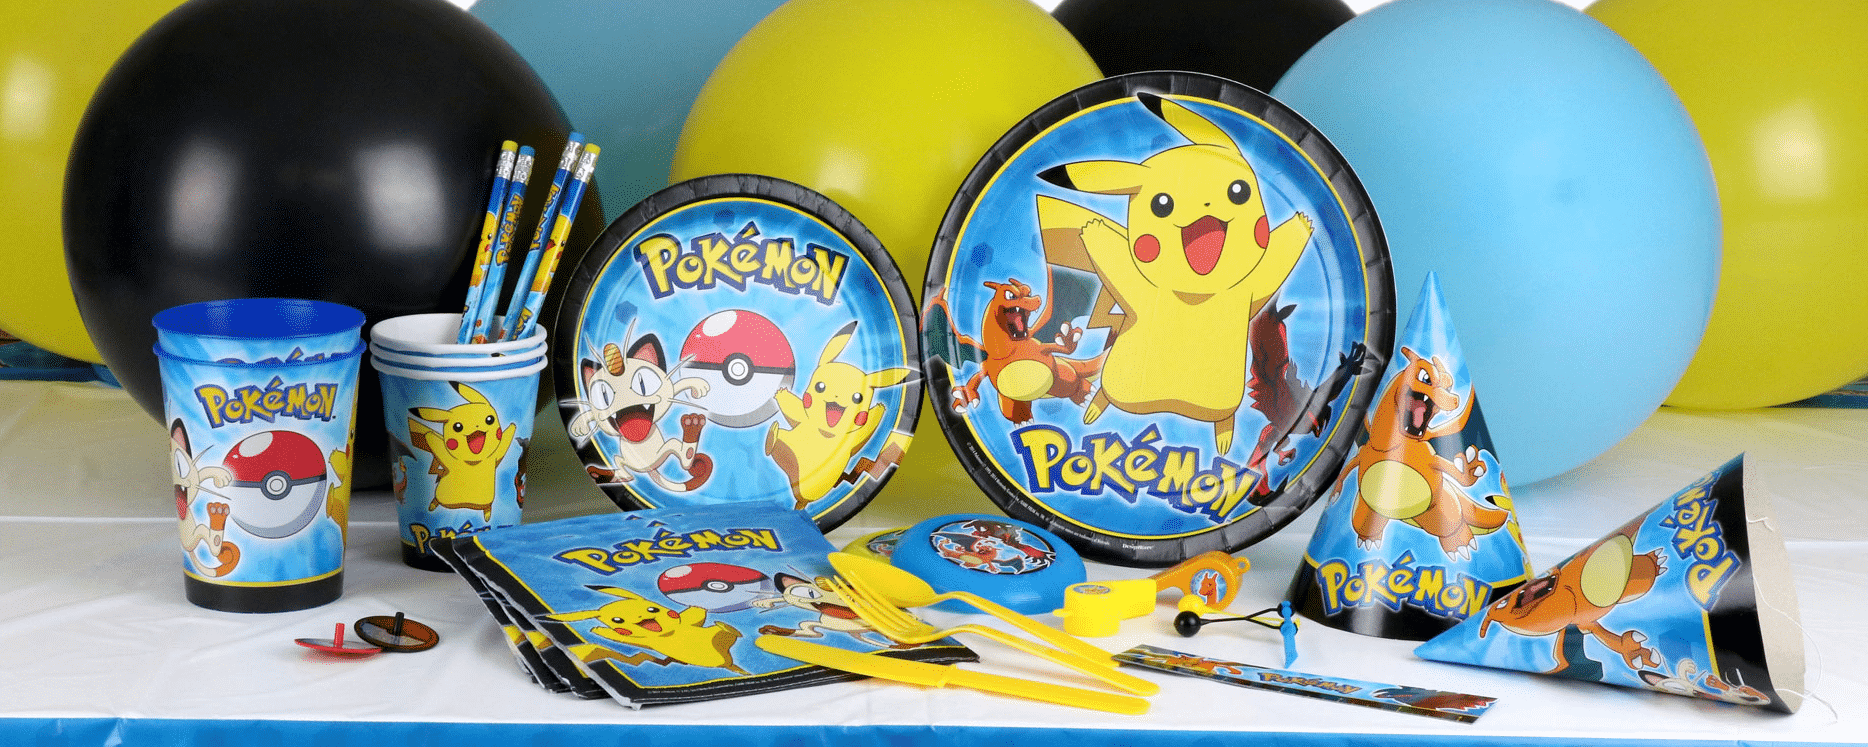 Pokemon themed party supplies, Pokemon Go Party decorations & balloons next day delivery